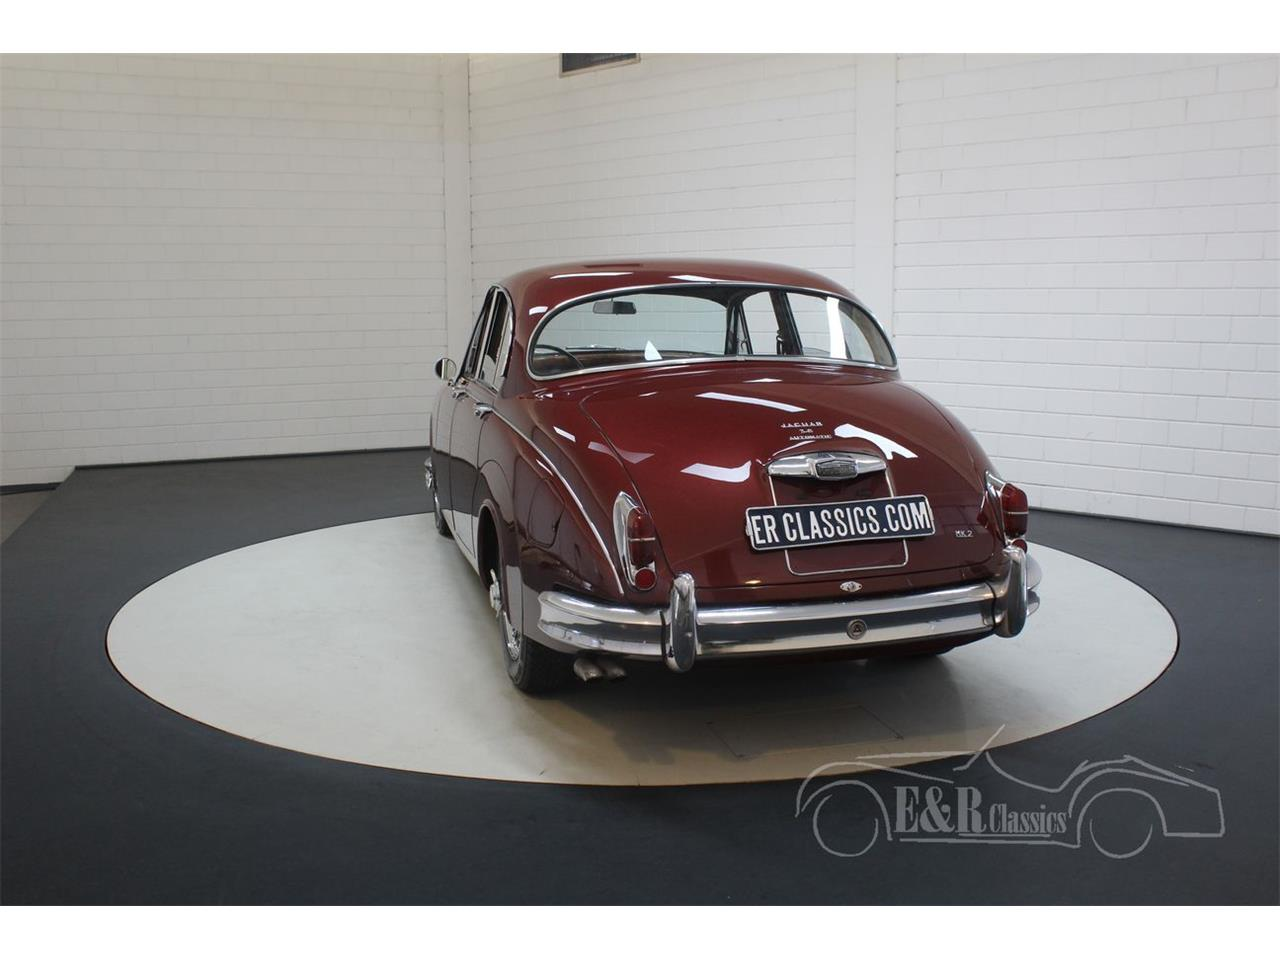 Large Picture of '60 Jaguar Mark II located in Noord-Brabant - $48,200.00 - QJZJ